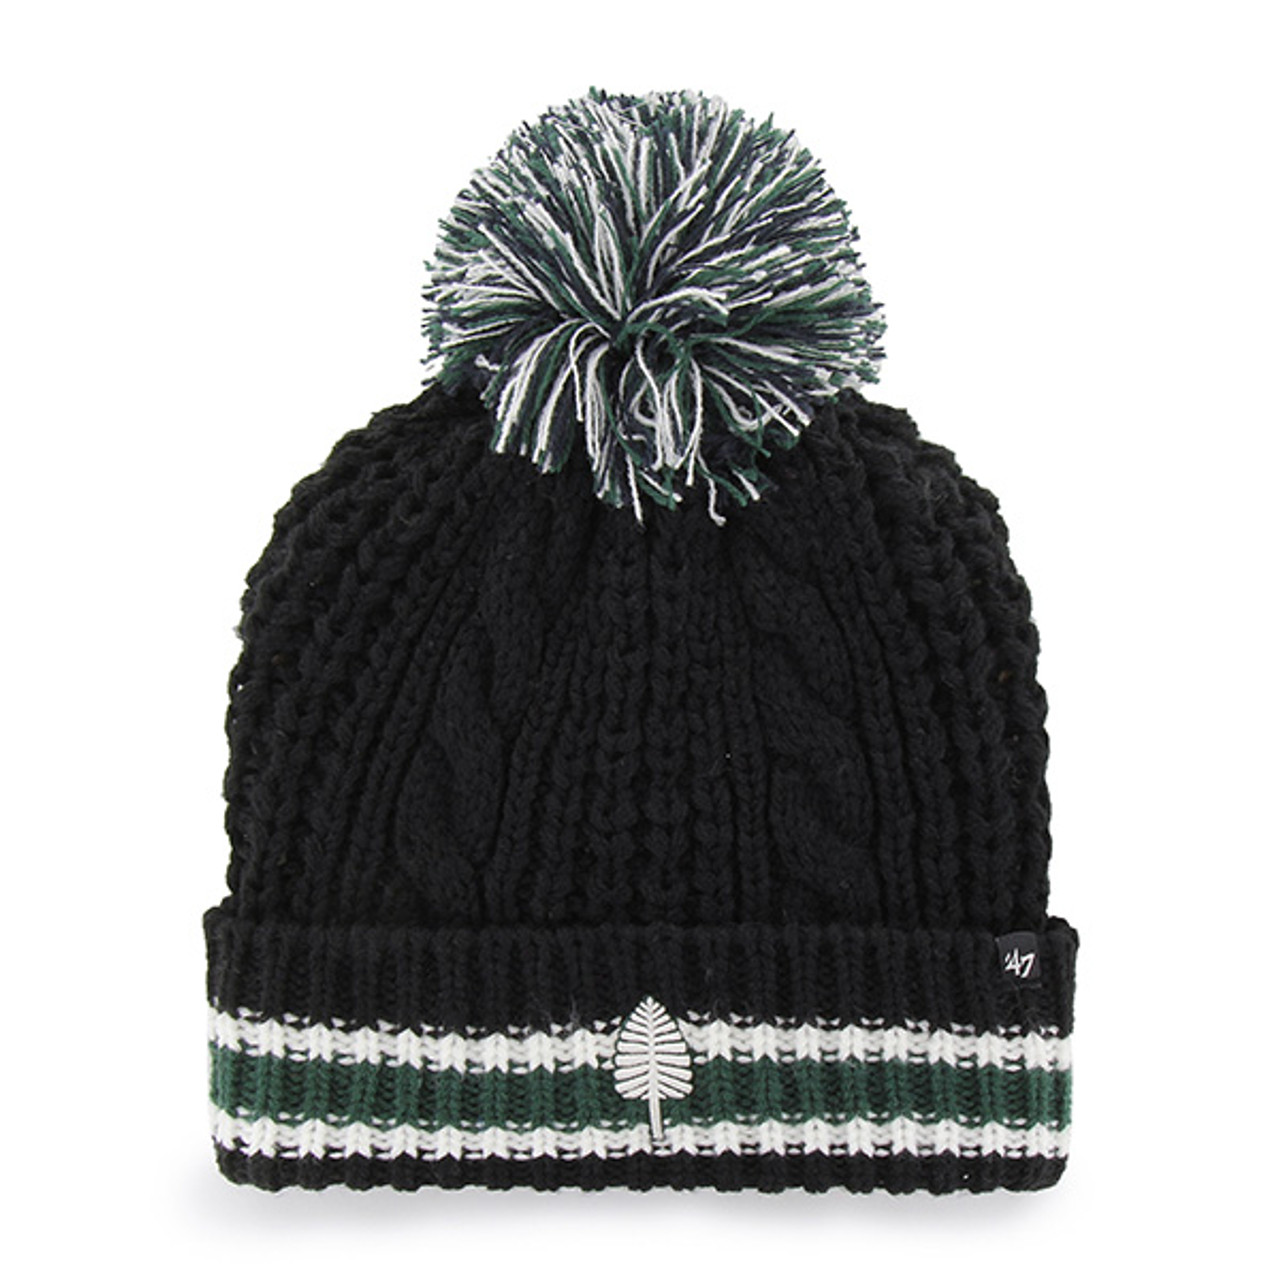 Black winter hat with green  Lone Pine  on brim with a green stripe and cff12a8abad